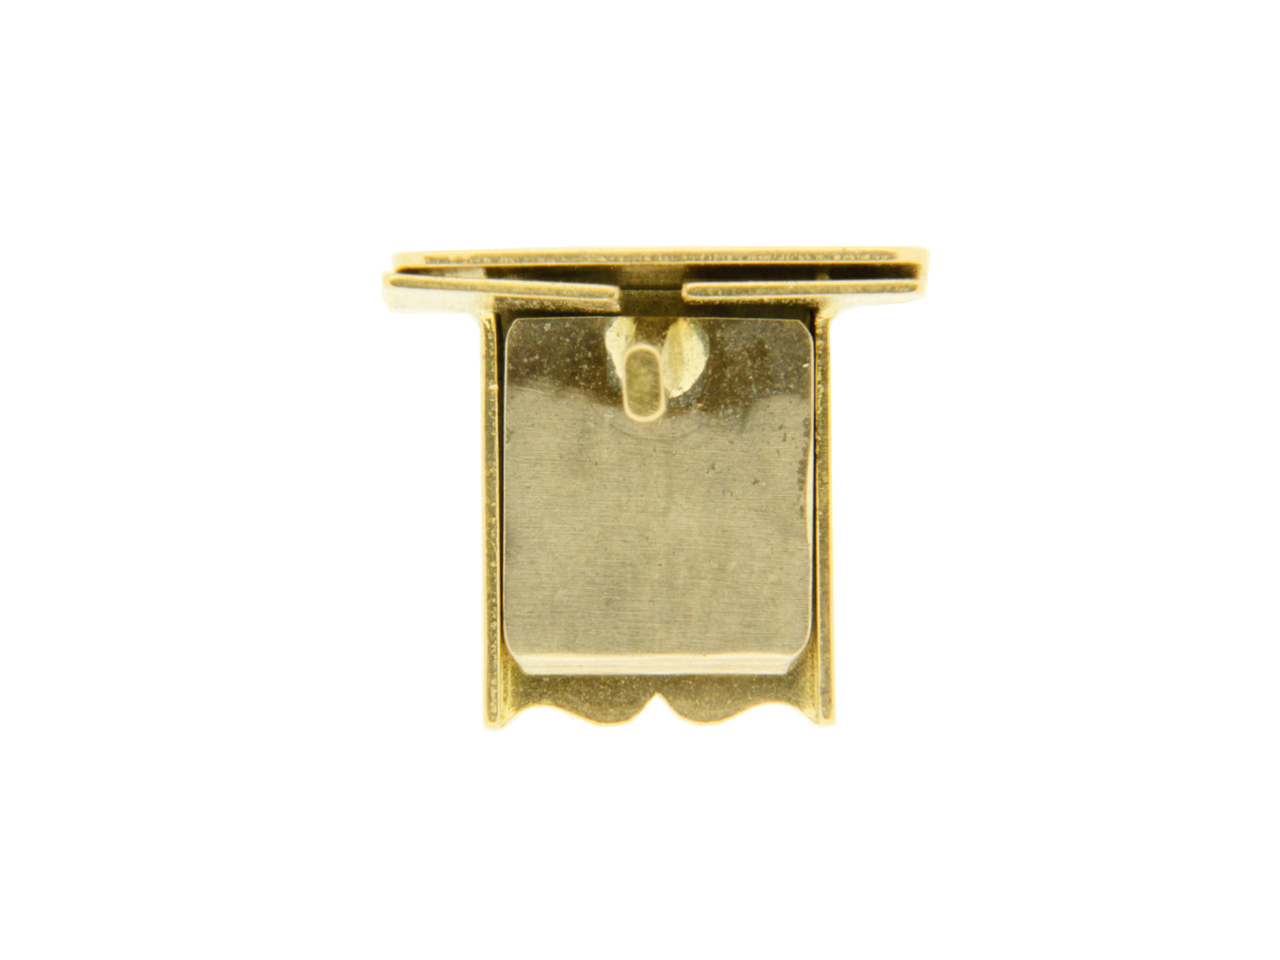 Fermoir cliquet, Or jaune 18k, 6,5 mm. Réf. 07167